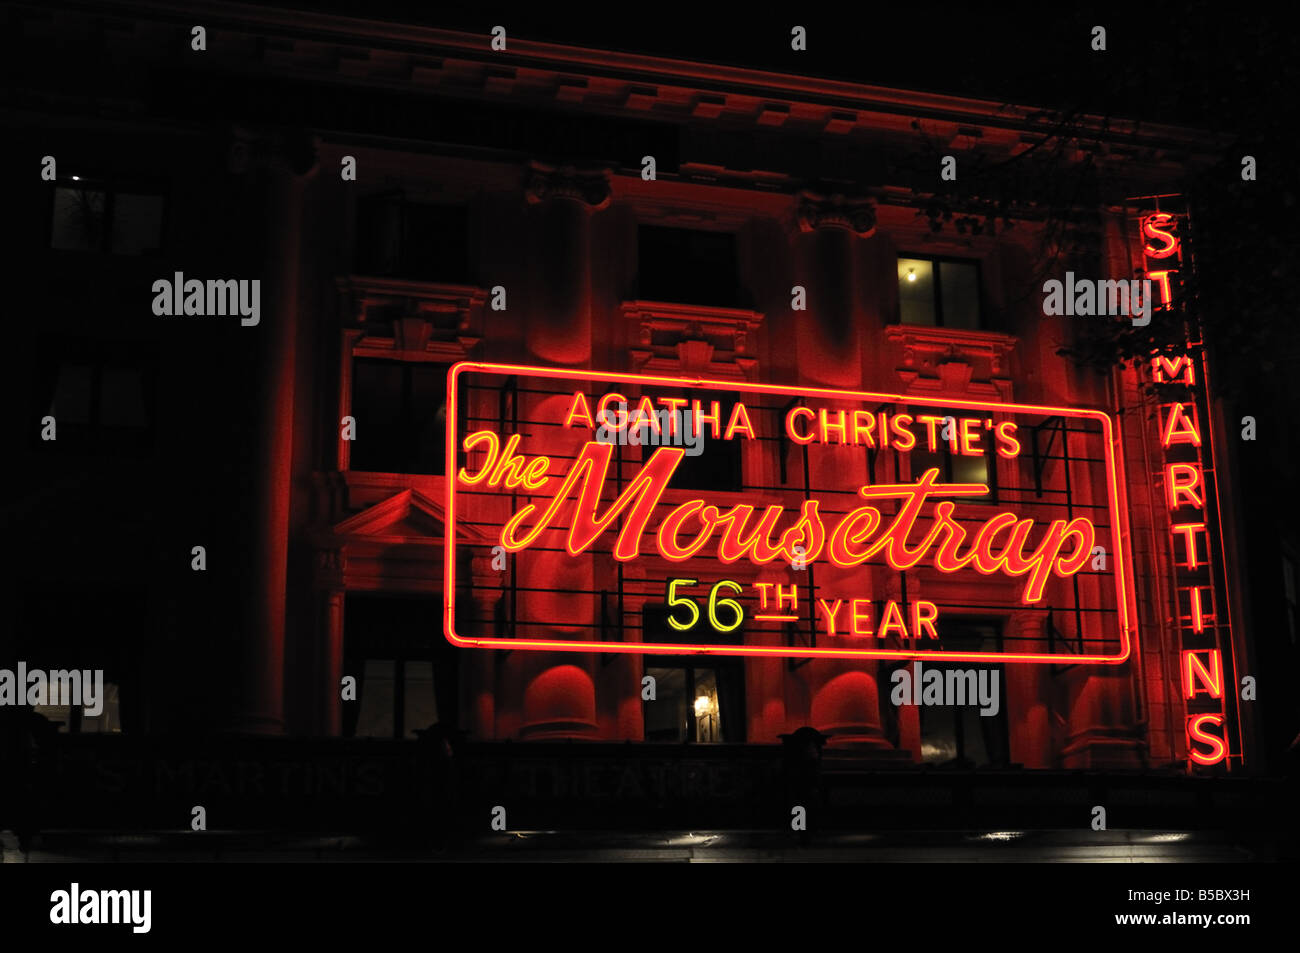 The 56th year of Agatha Christie s The Mousetrap at St Martins theatre London UK - Stock Image